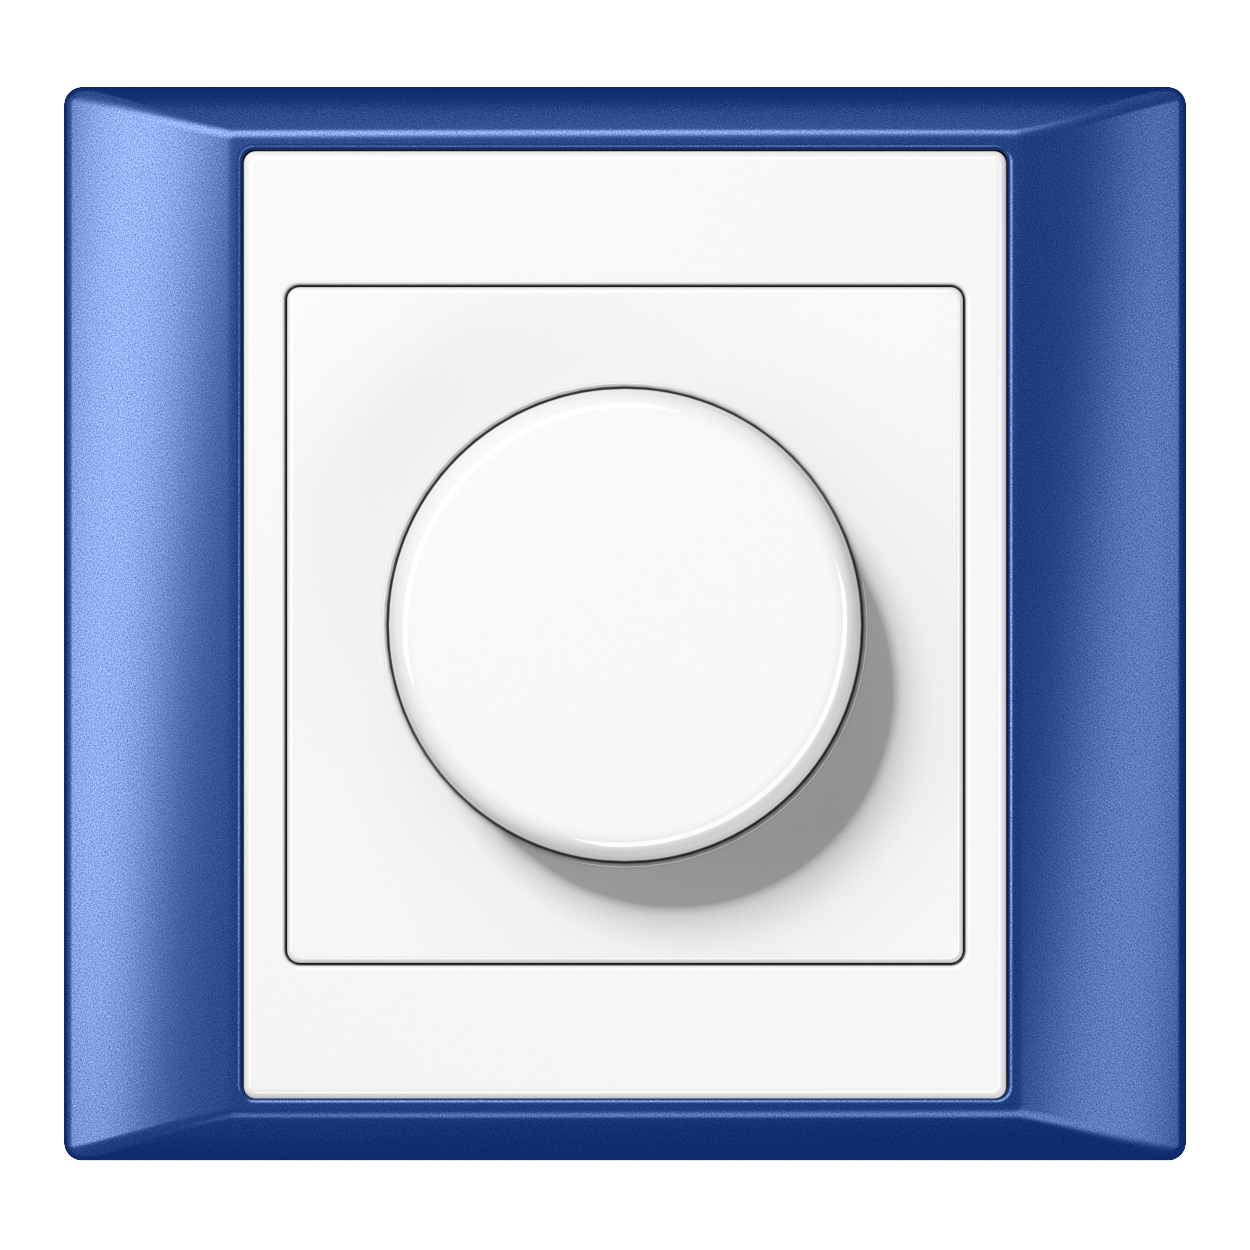 JUNG_Aplus_blue-white_dimmer